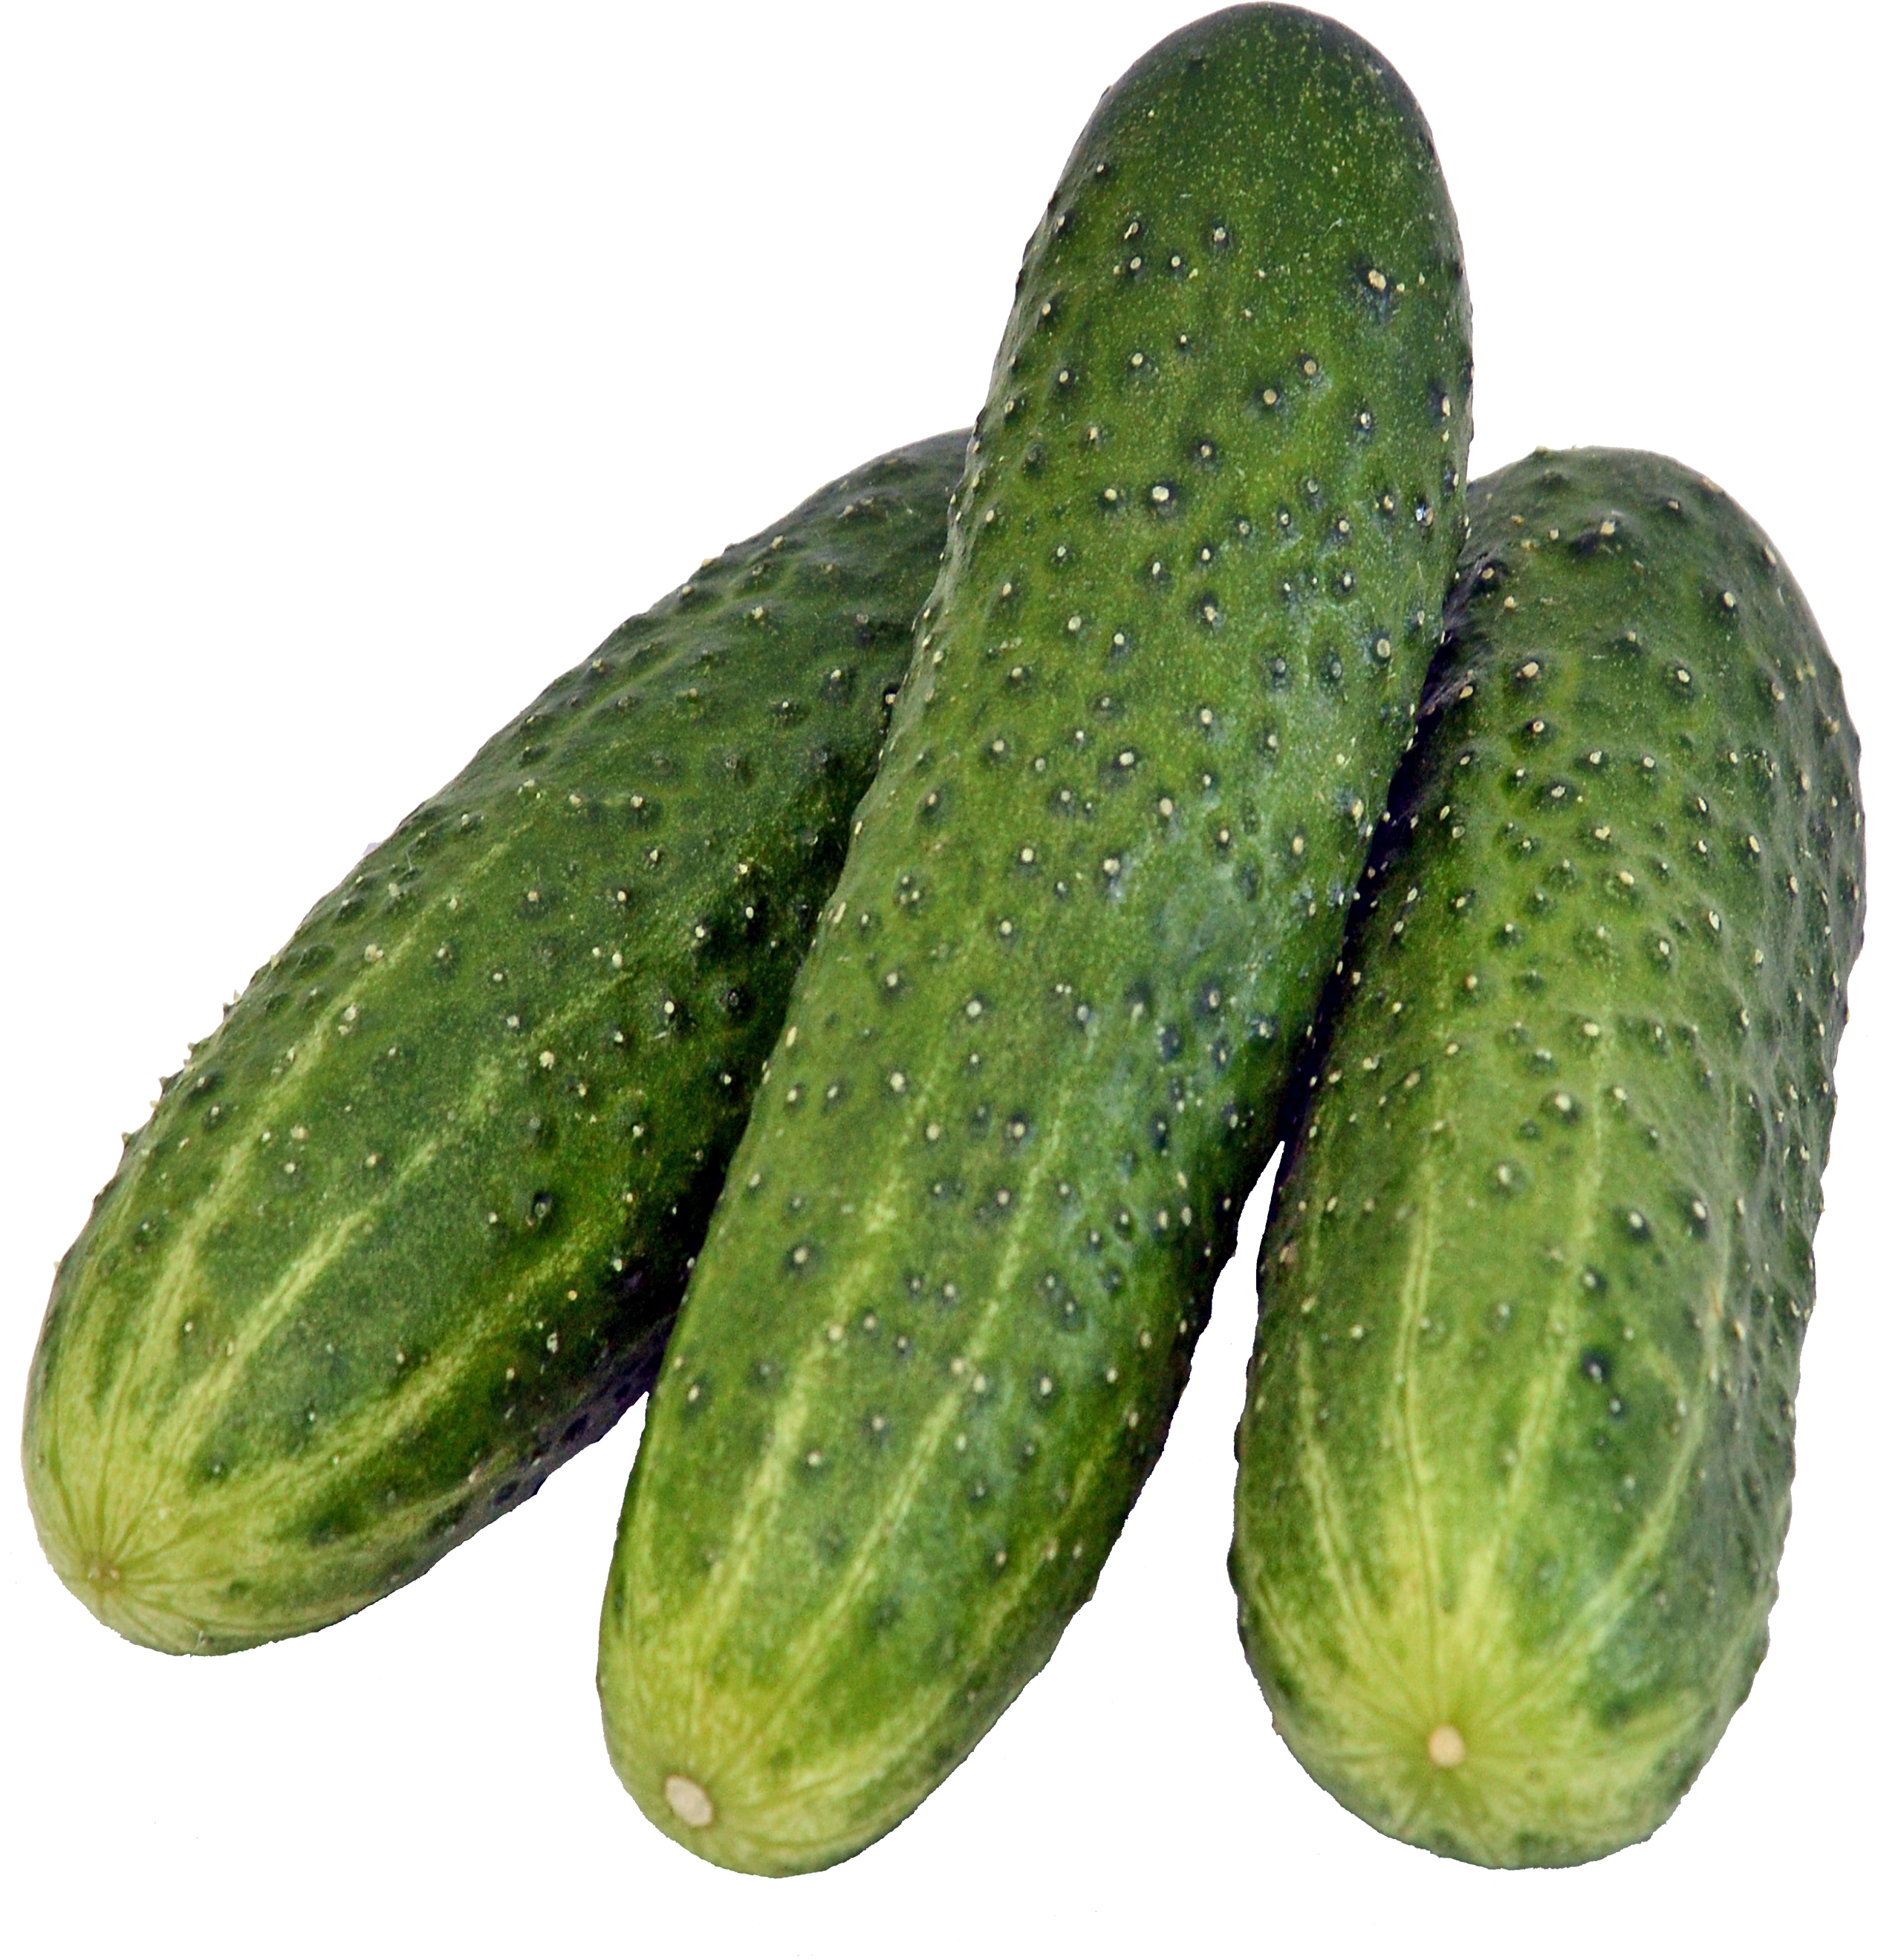 Cucumber PNG images free download.